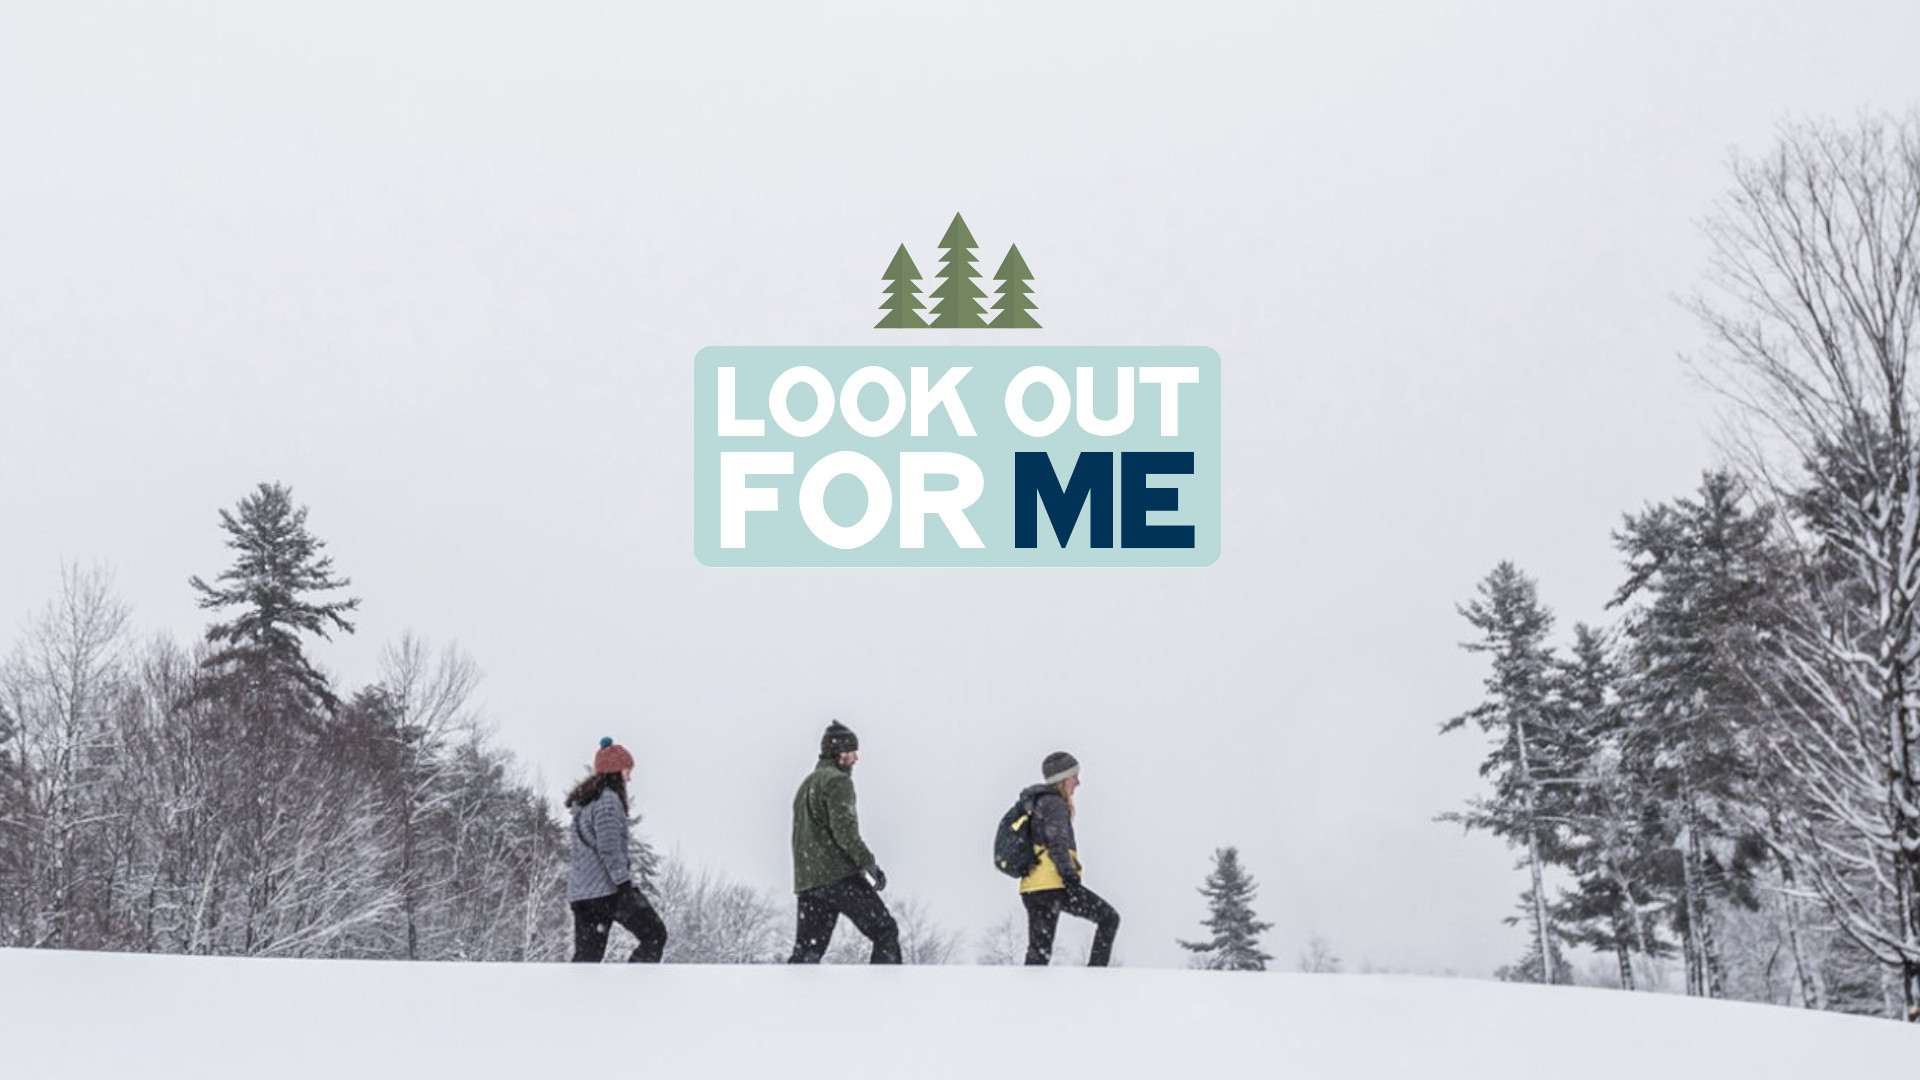 Look Out for ME, Maine Office of Tourism